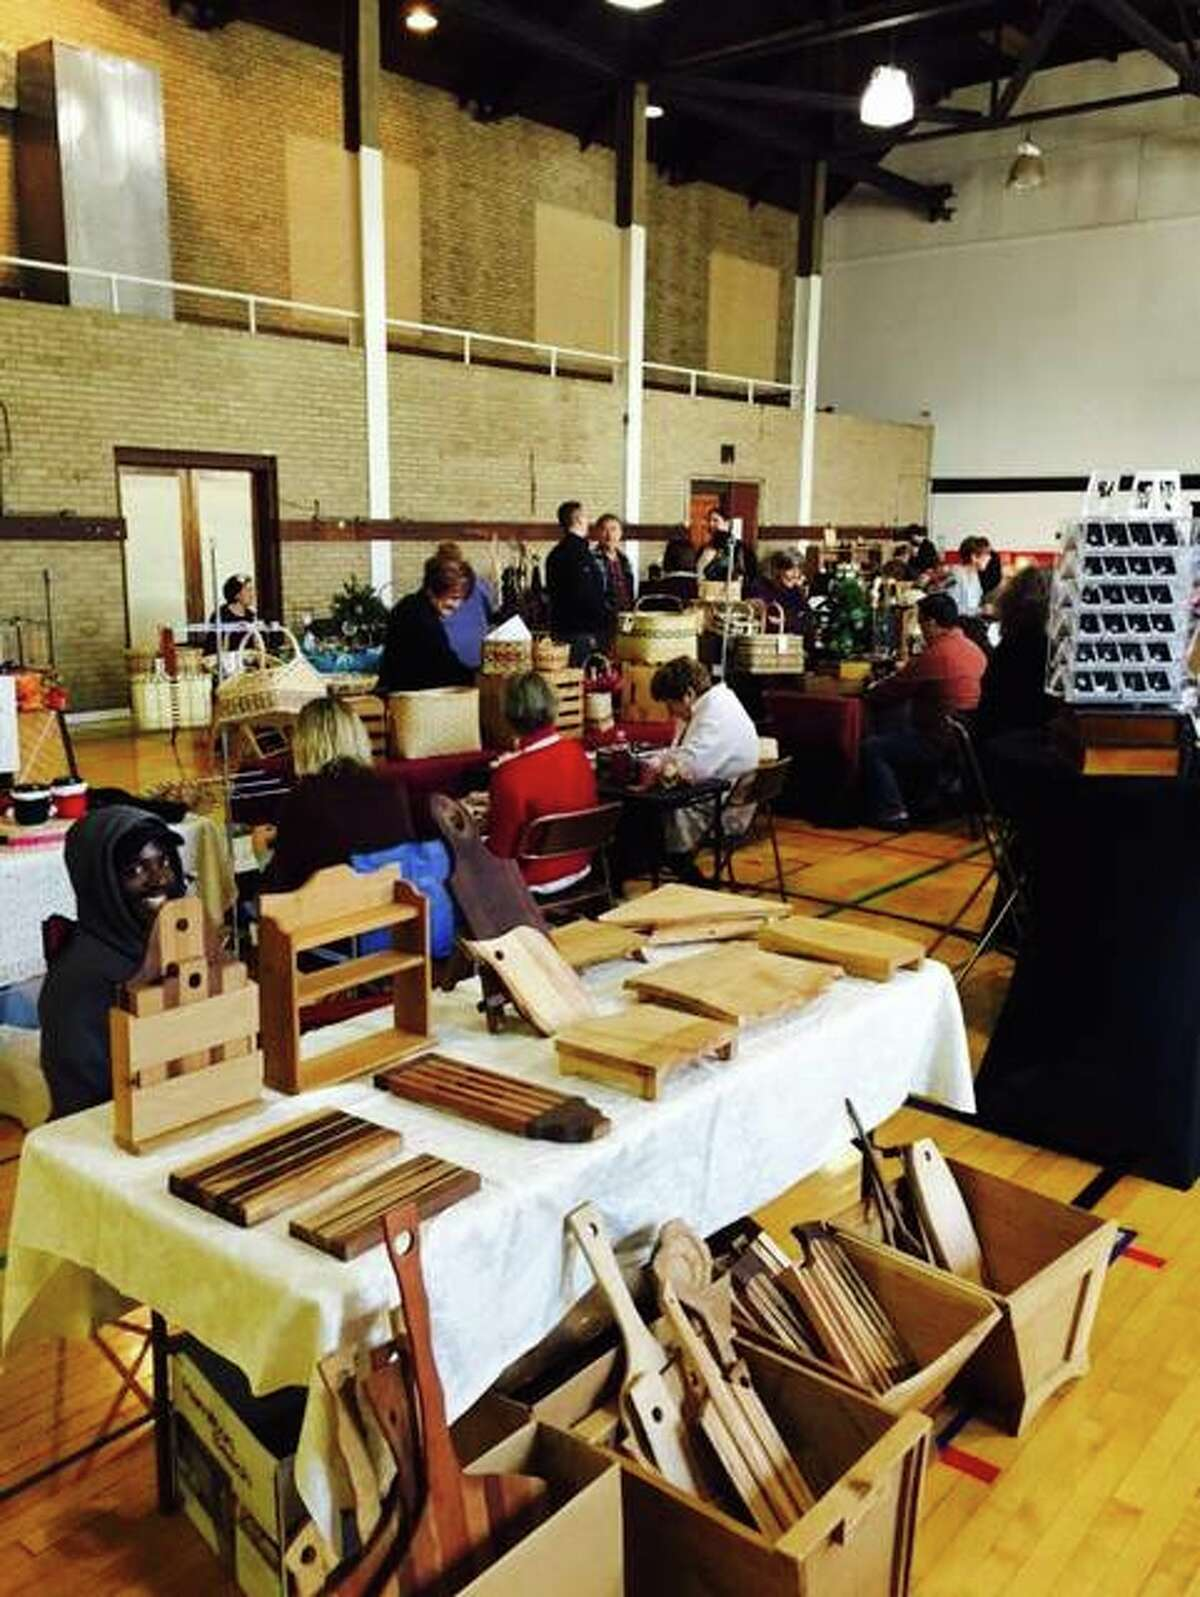 Hand-carved wooden wares on display at last year's Green Gift Bazaar.